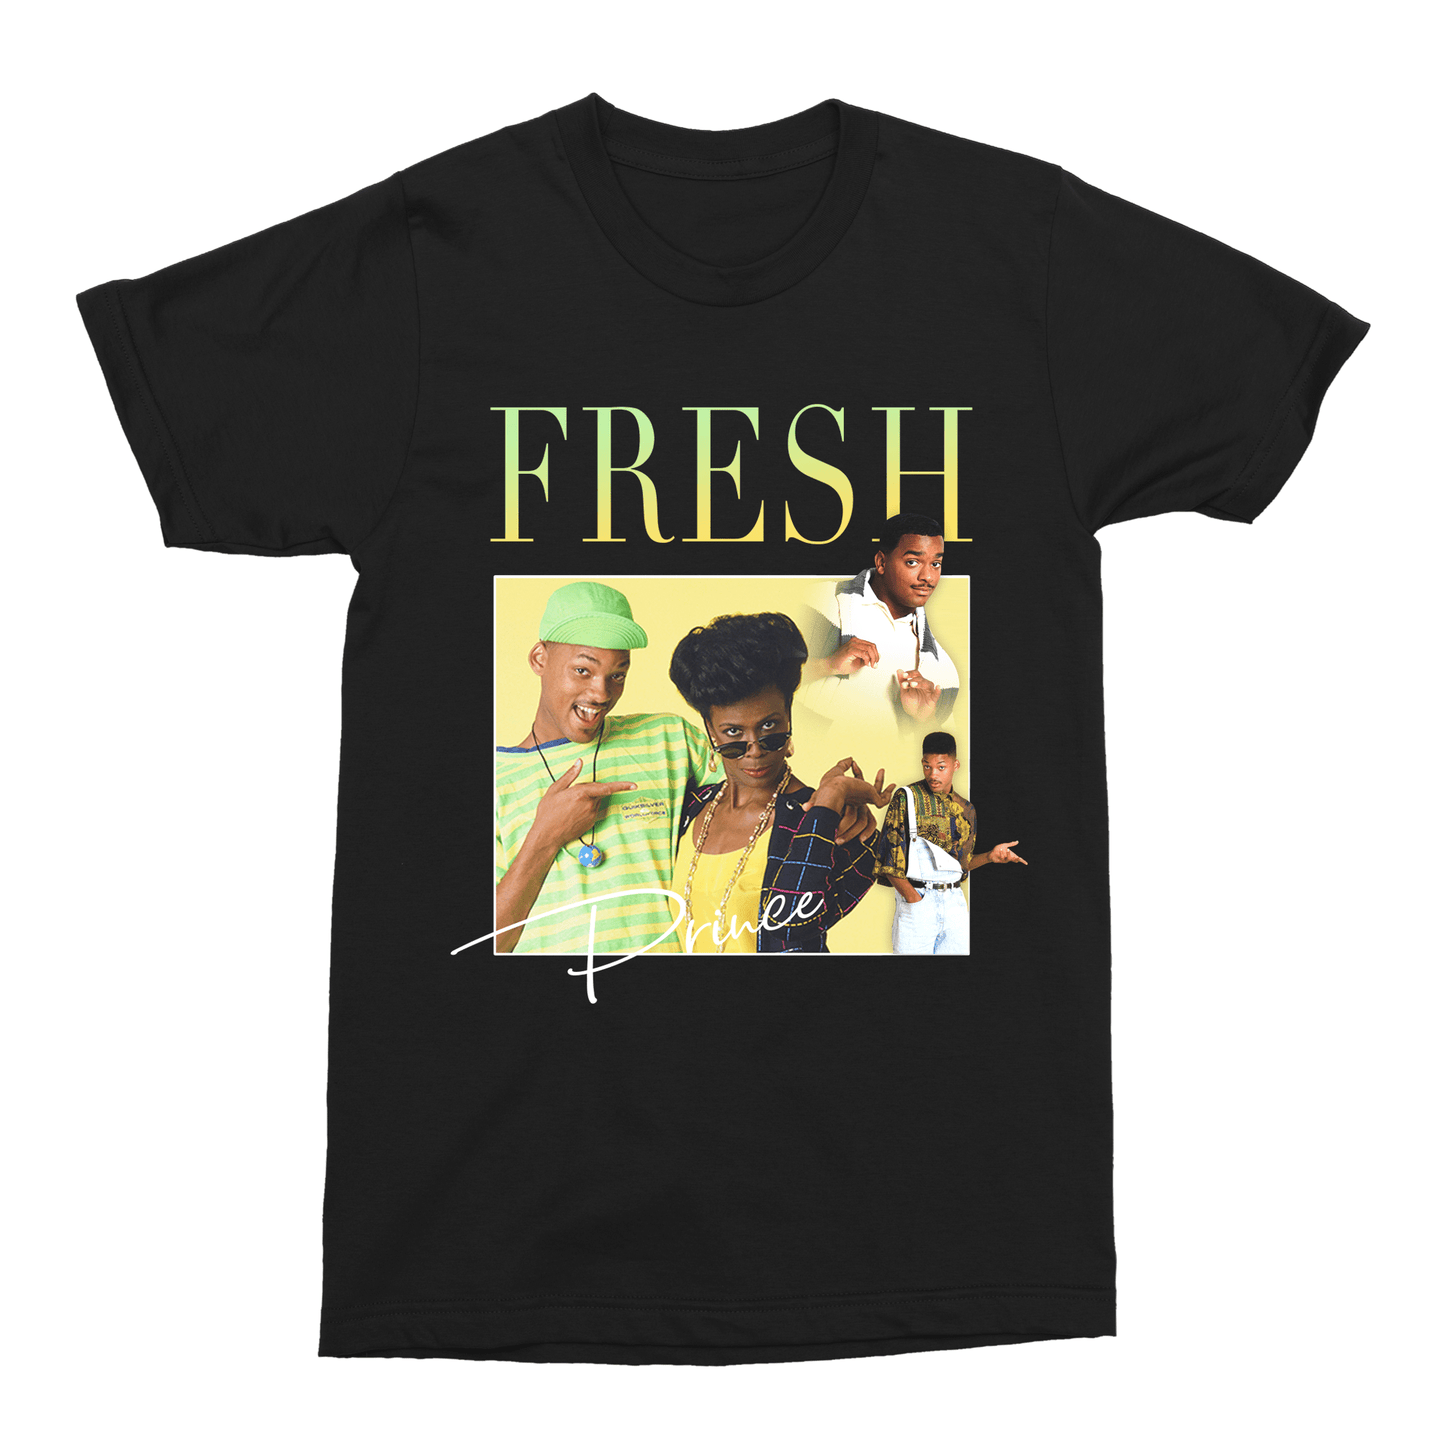 Fresh Prince of Bel-Air Will Smith 90s TV Unisex Vintage Throwback T-Shirt - Timeless Tees